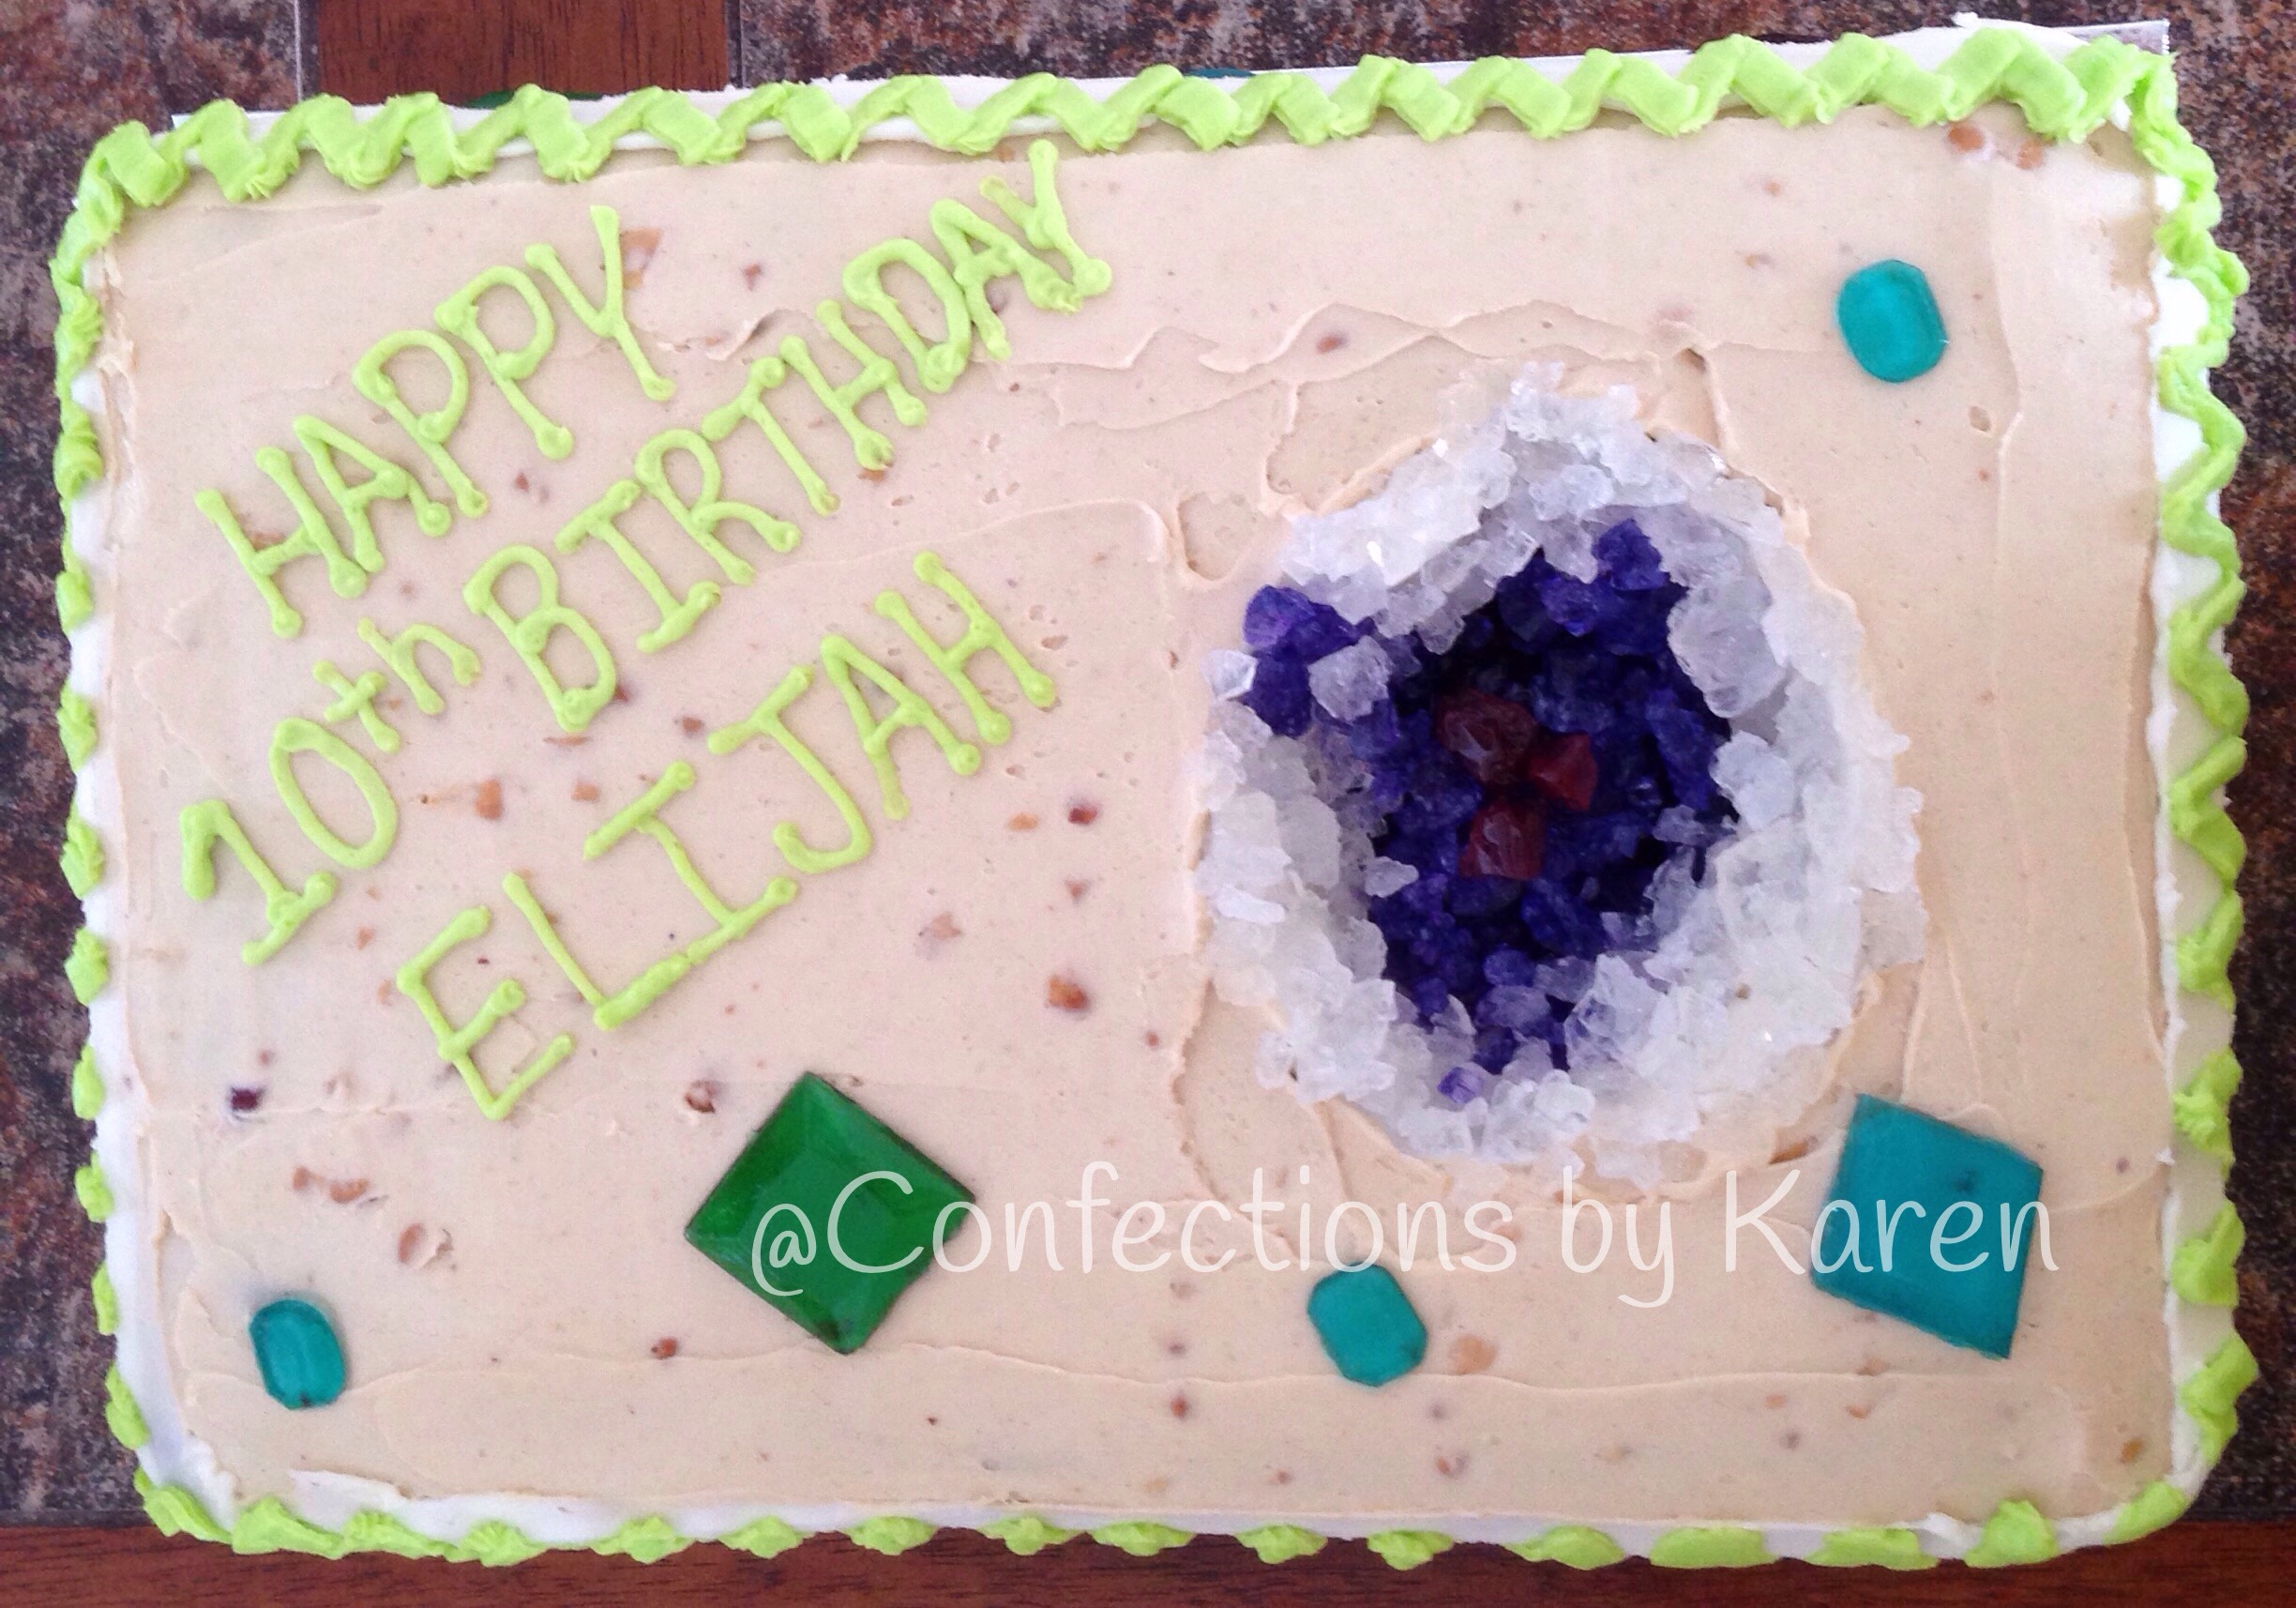 Chocolate cake filled/frosted with Peanut Butter Buttercream, isomalt gemstones, rock candy geode